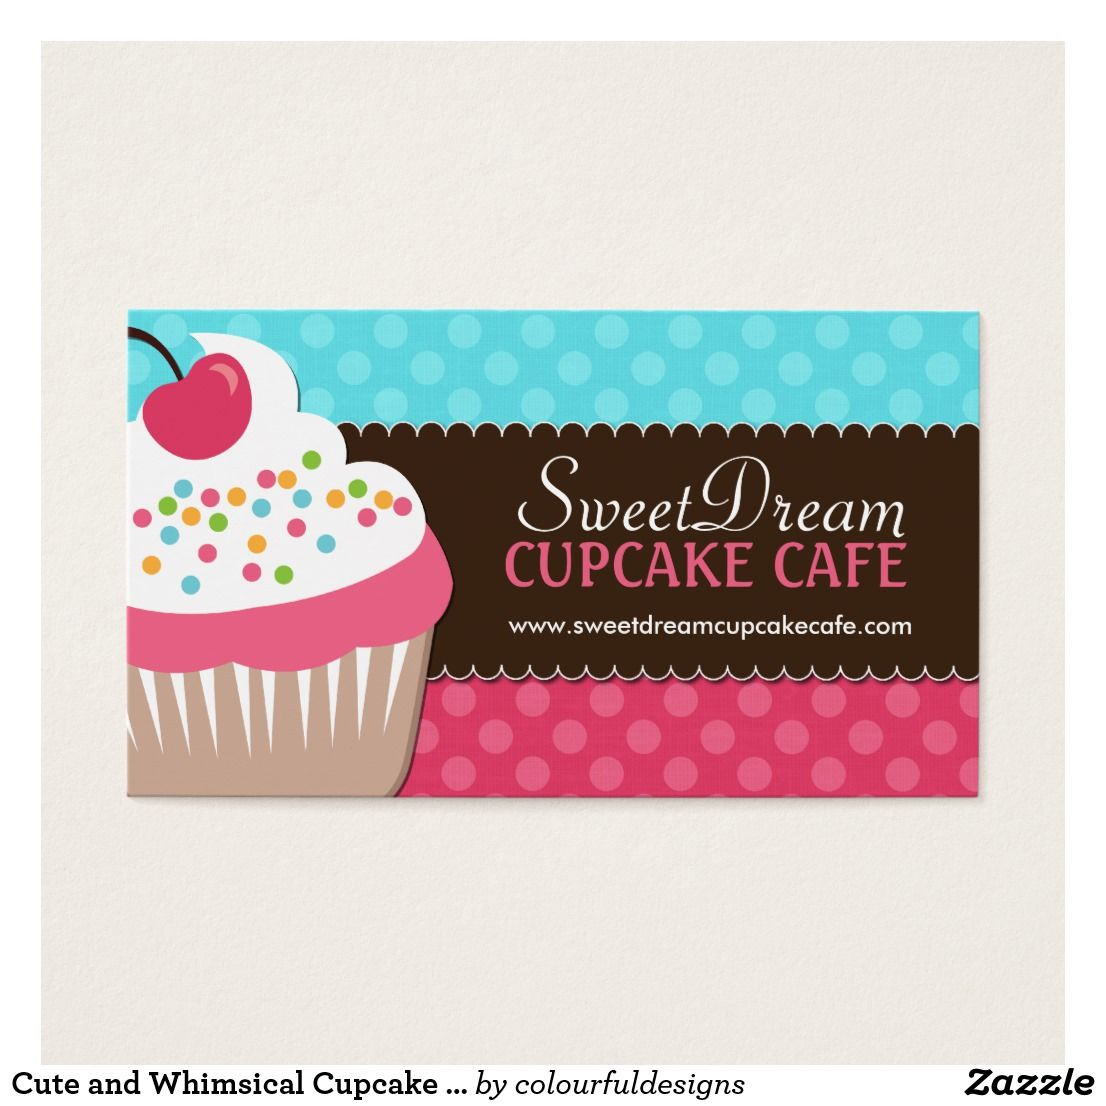 Cute and Whimsical Cupcake Bakery Business Cards | Pinterest ...